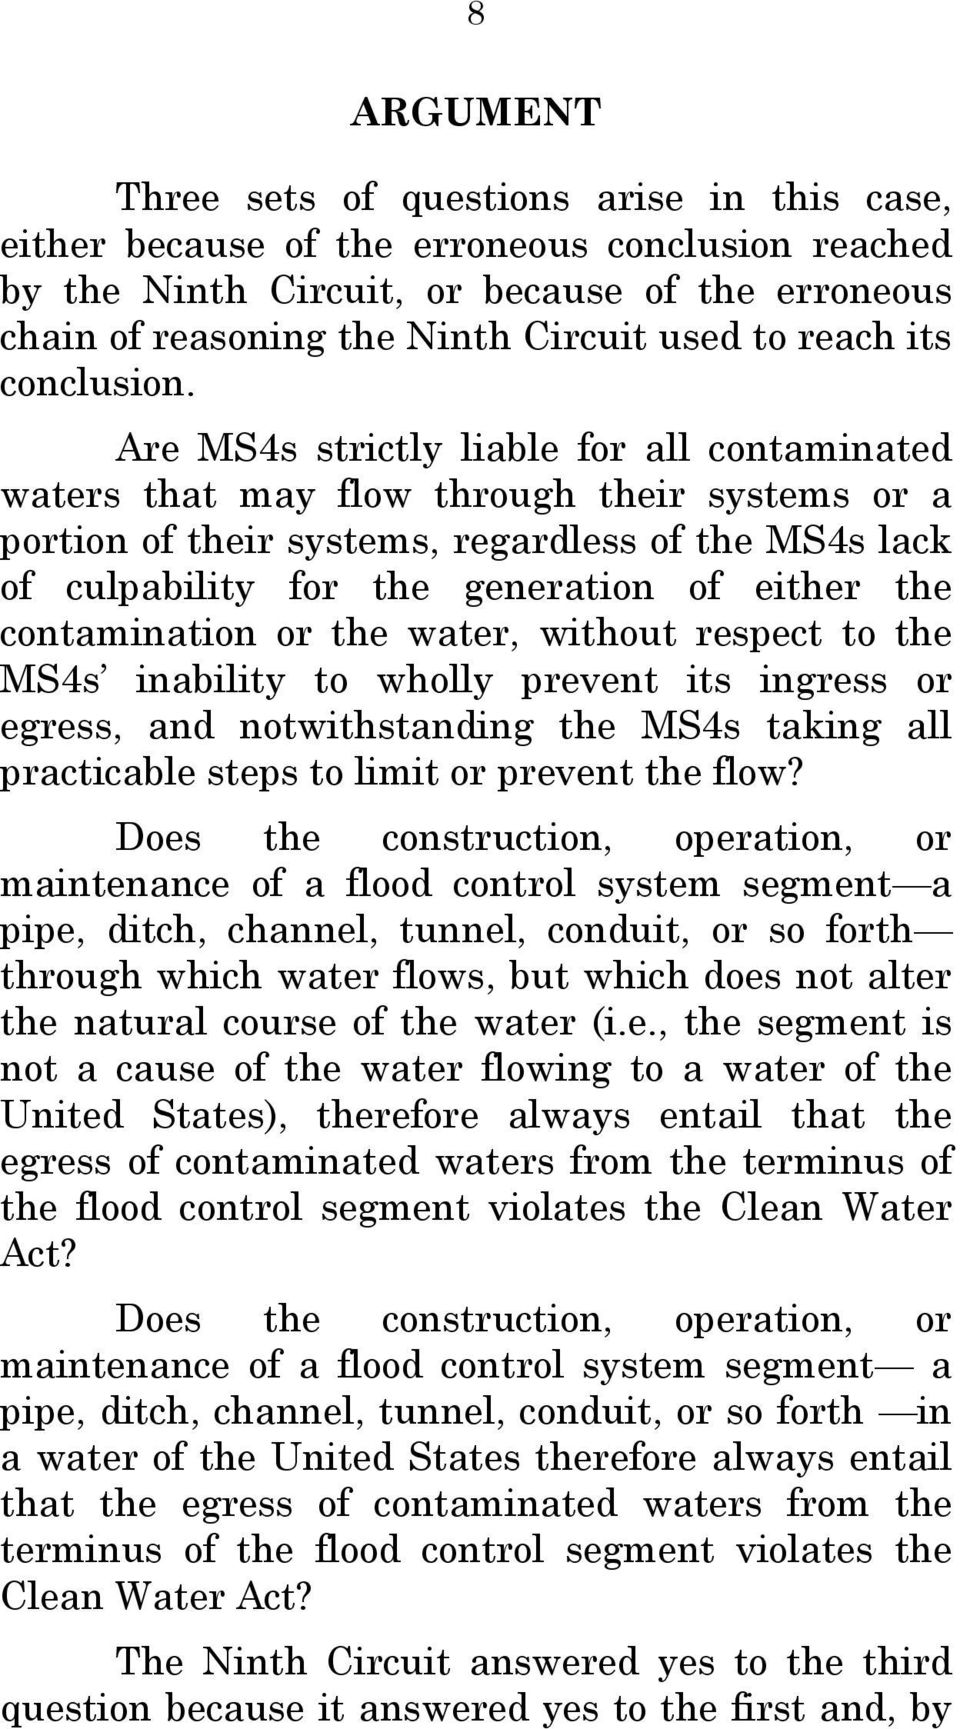 Are MS4s strictly liable for all contaminated waters that may flow through their systems or a portion of their systems, regardless of the MS4s lack of culpability for the generation of either the